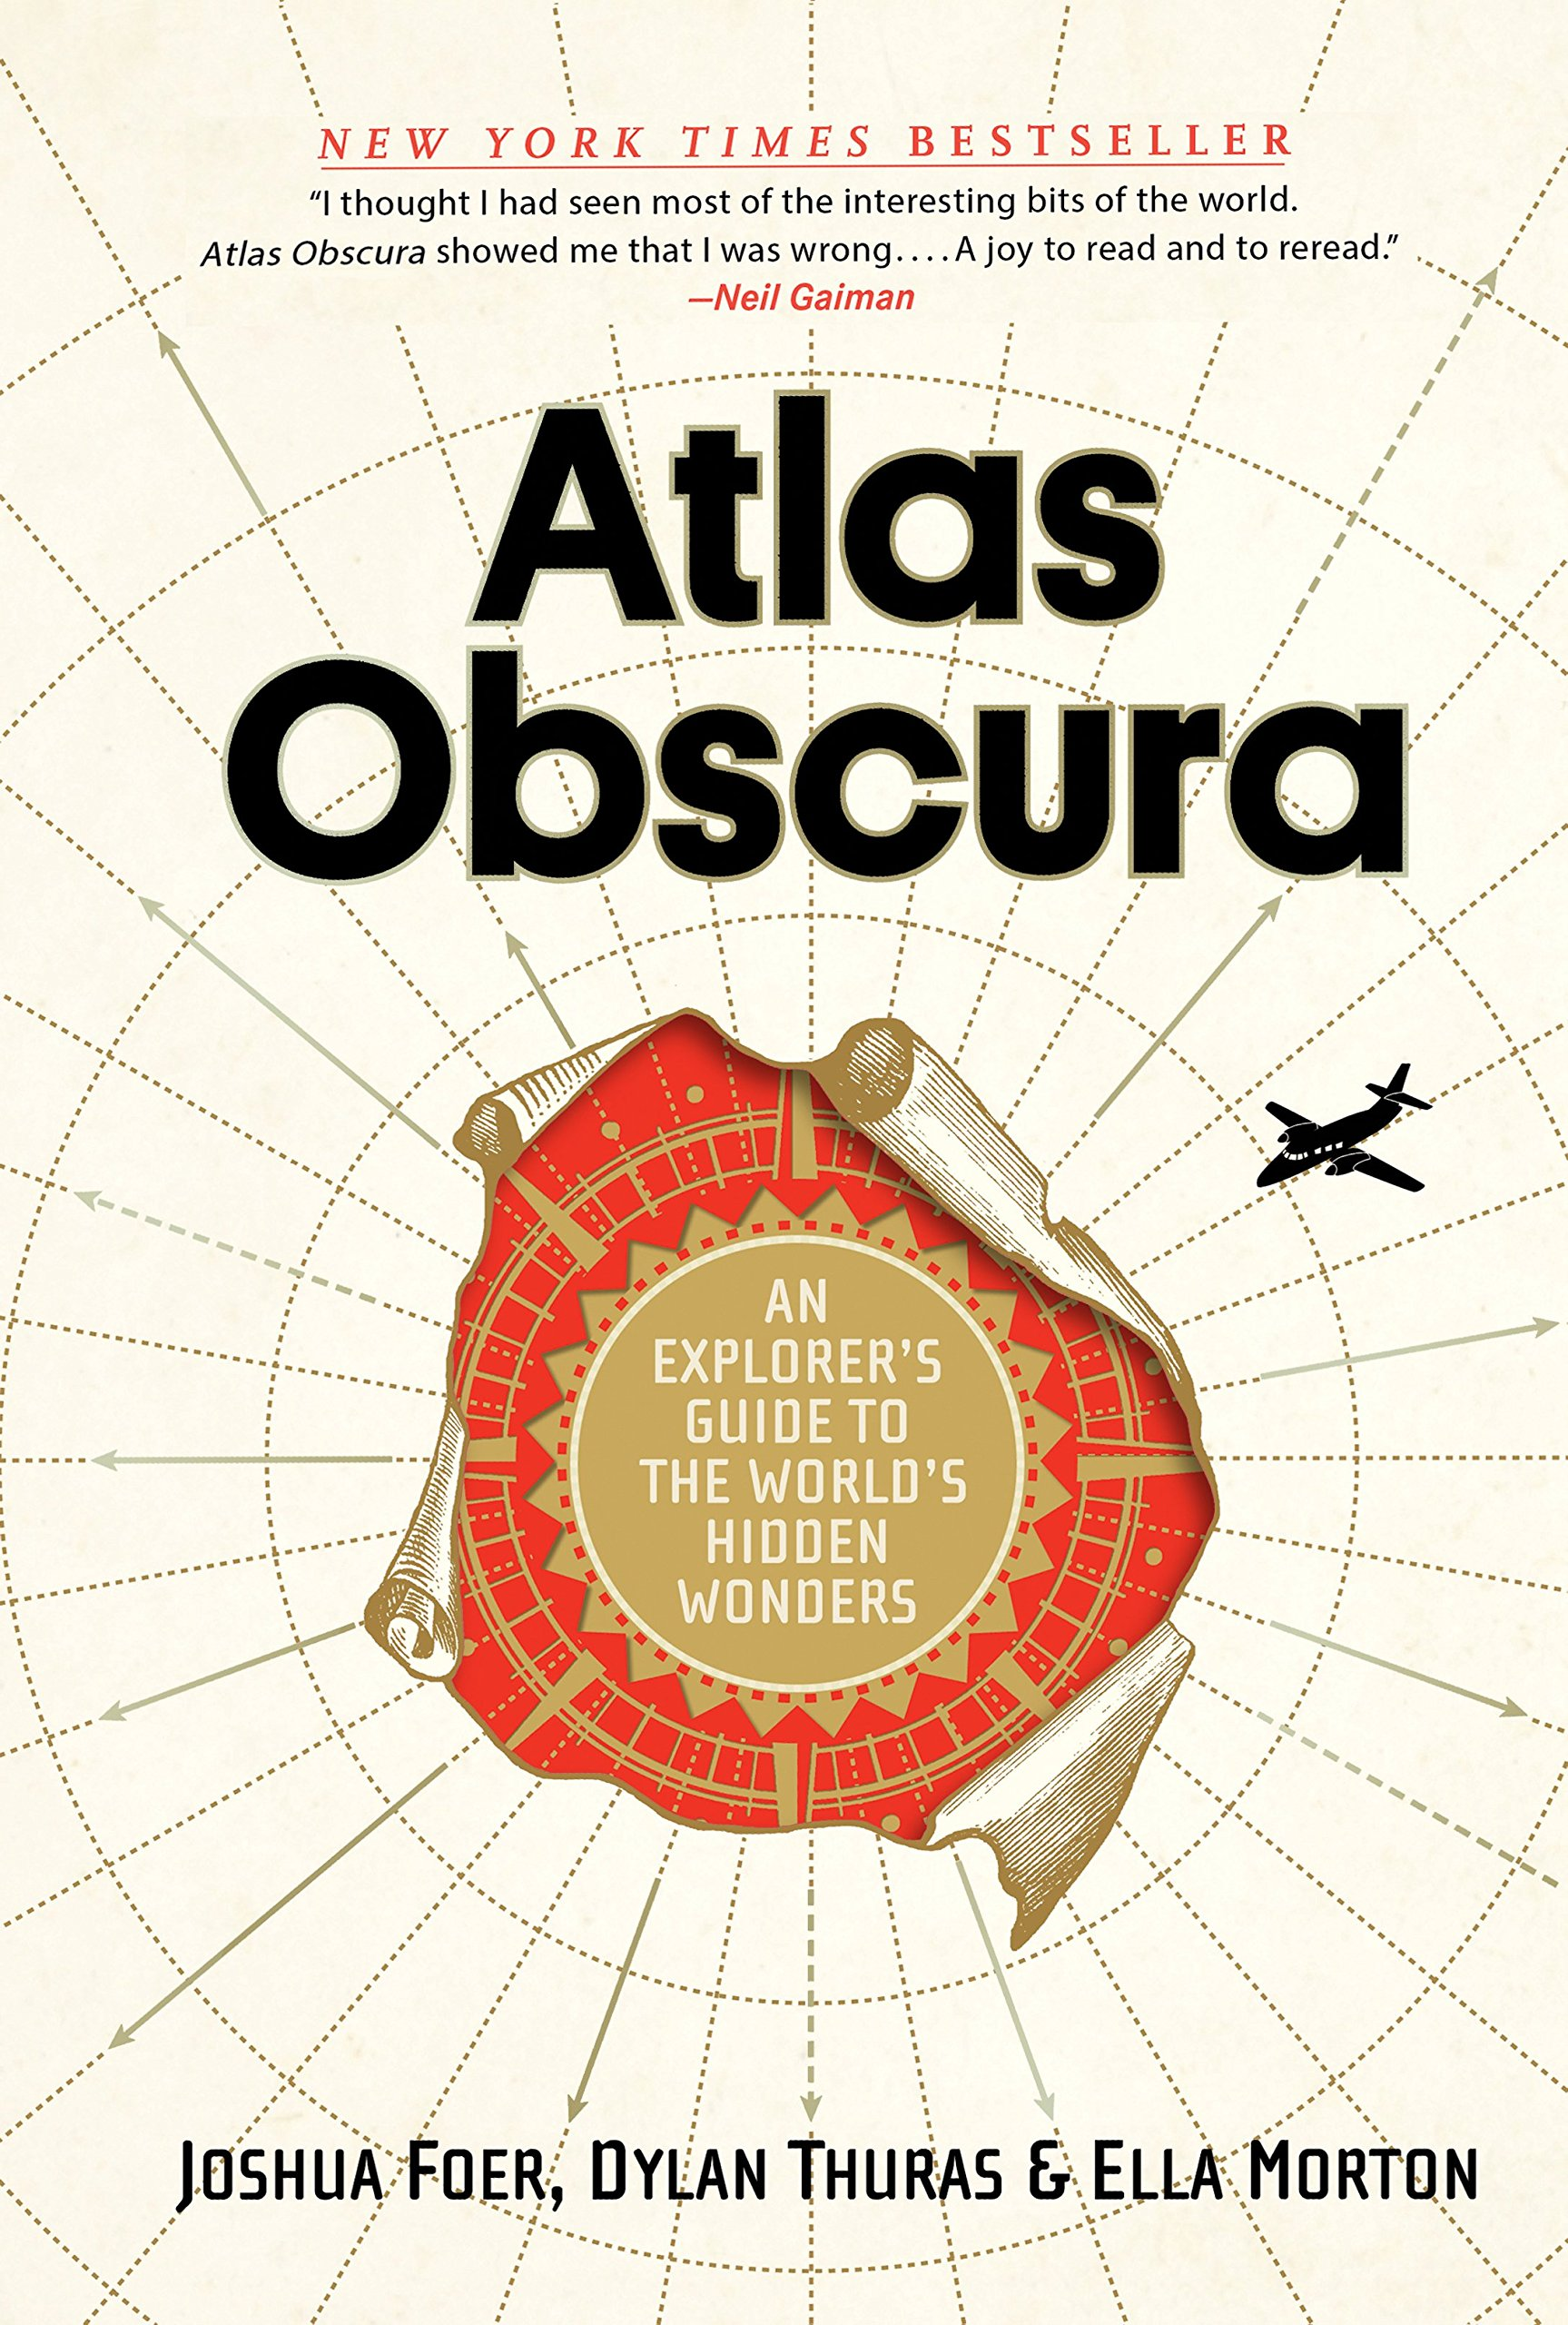 Download Atlas Obscura: An Explorer's Guide To The World's Hidden Wonders Lingua Inglese 